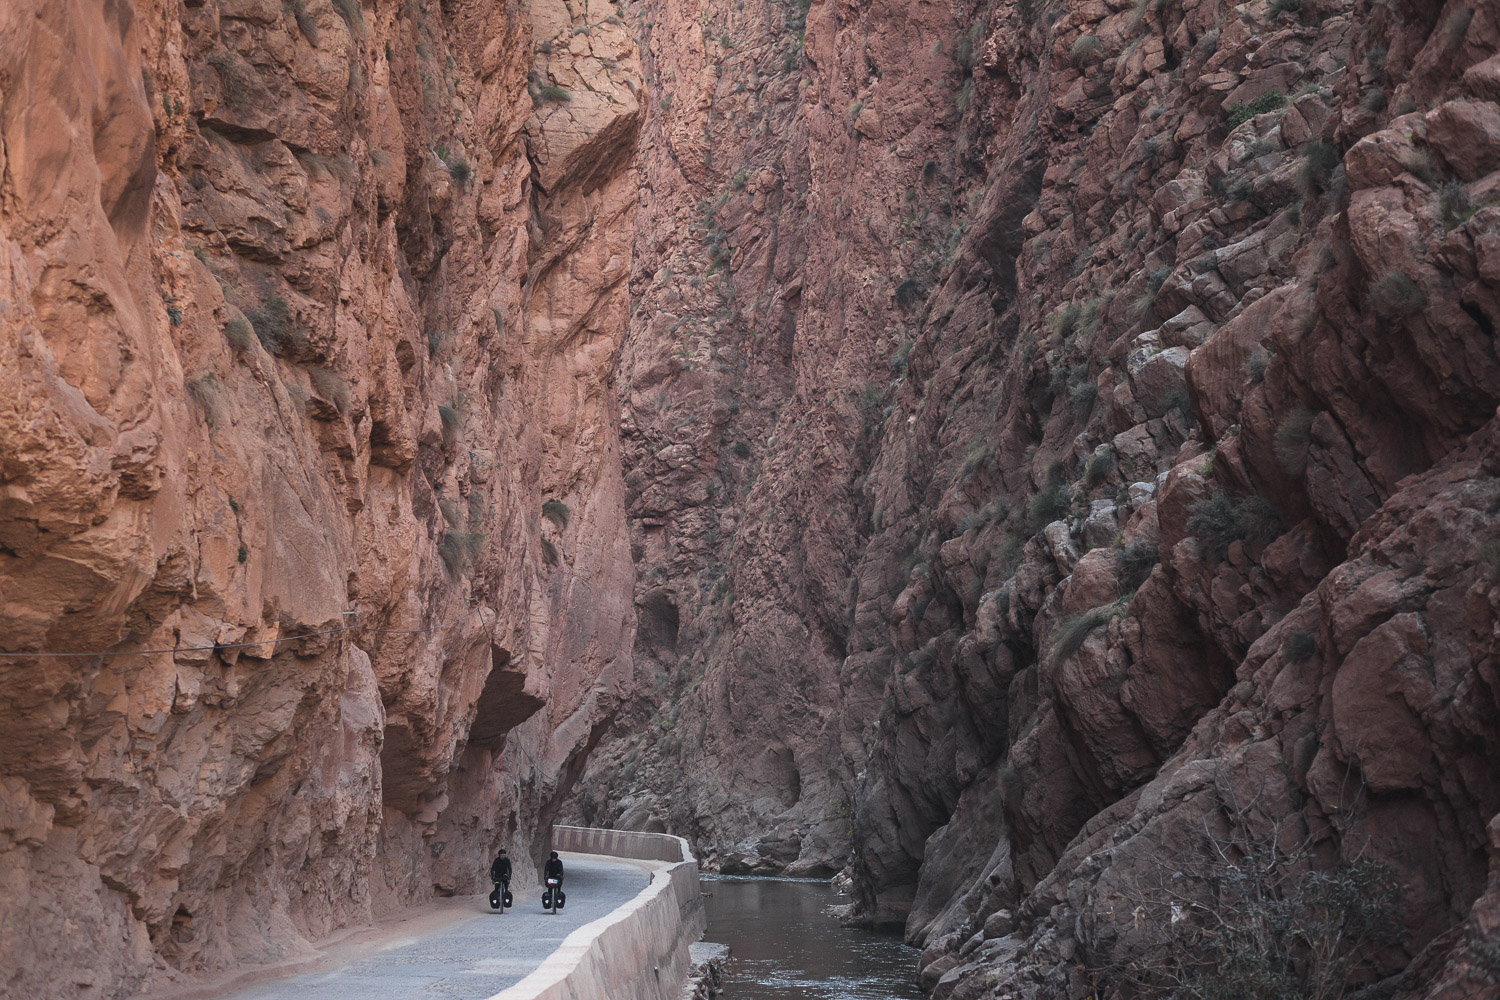 8bar bikes adventures morocco gravel 20151213 0044 bearbeitet - 8bar Adventures - Morocco - High Atlas - Part 2/2